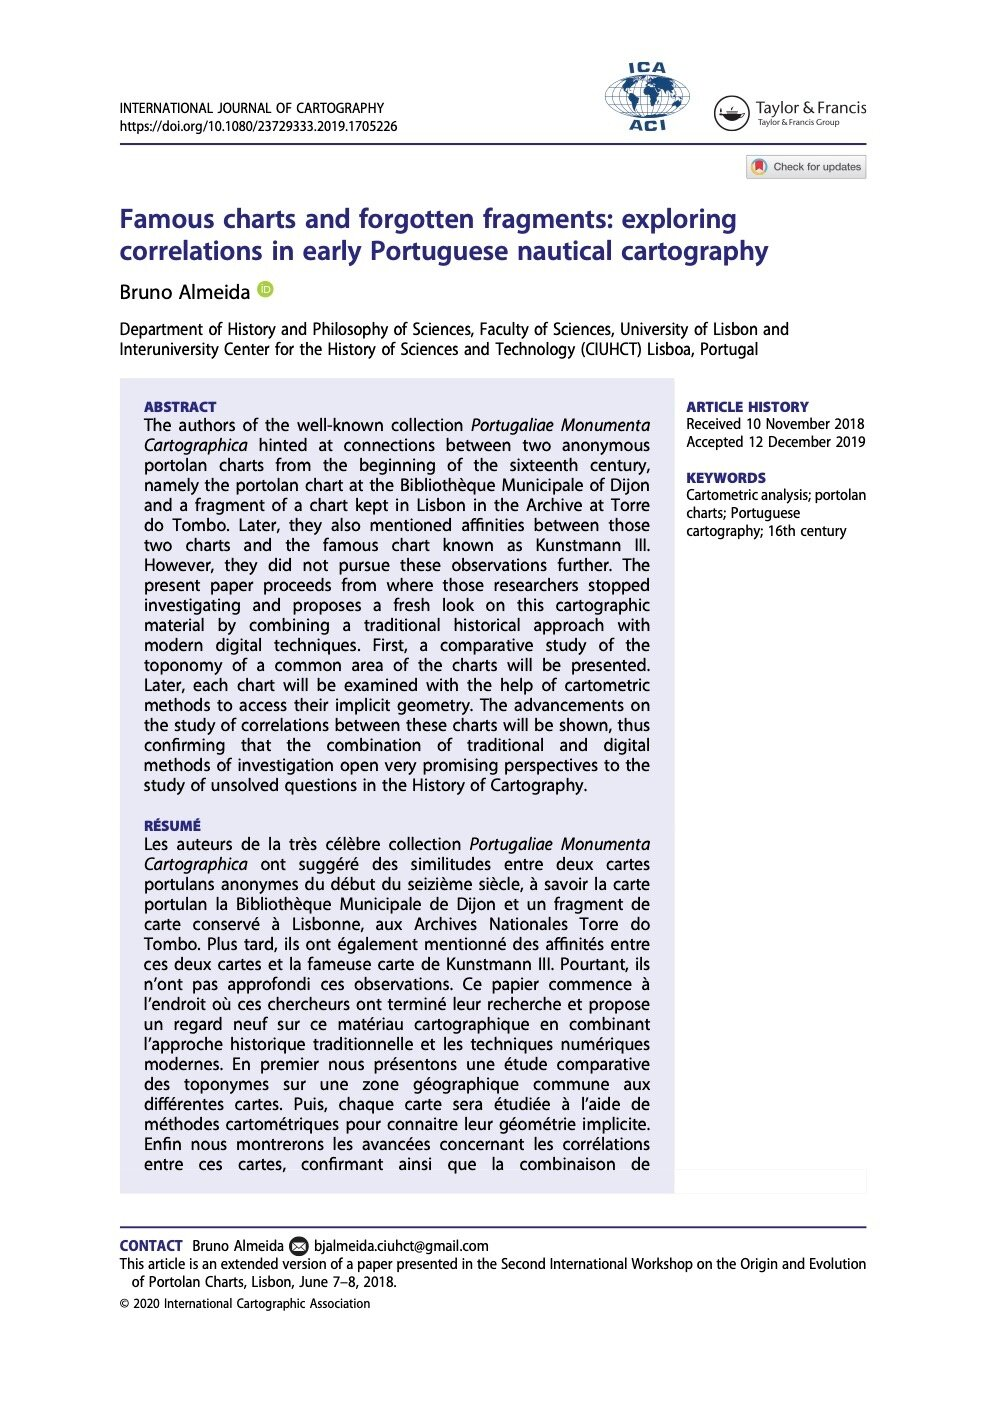 Famous charts and forgotten fragments: exploring correlations in early Portuguese nautical cartography, Capa